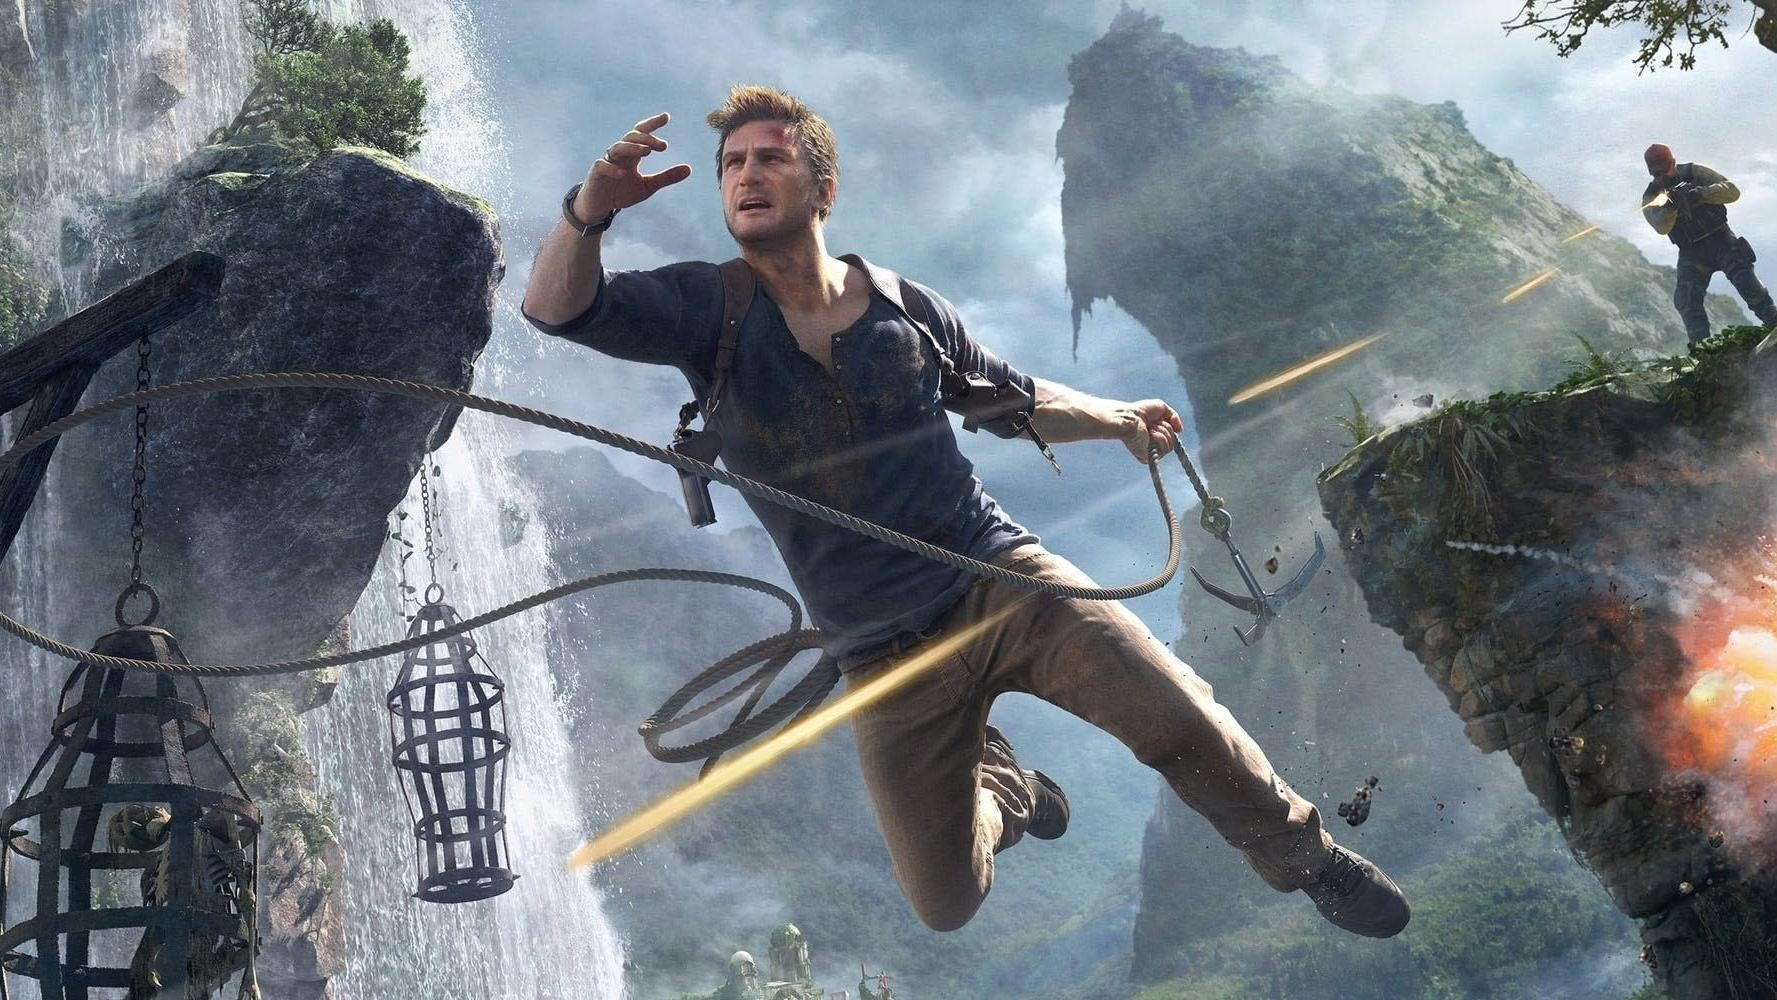 Uncharted Just Lost Another Director